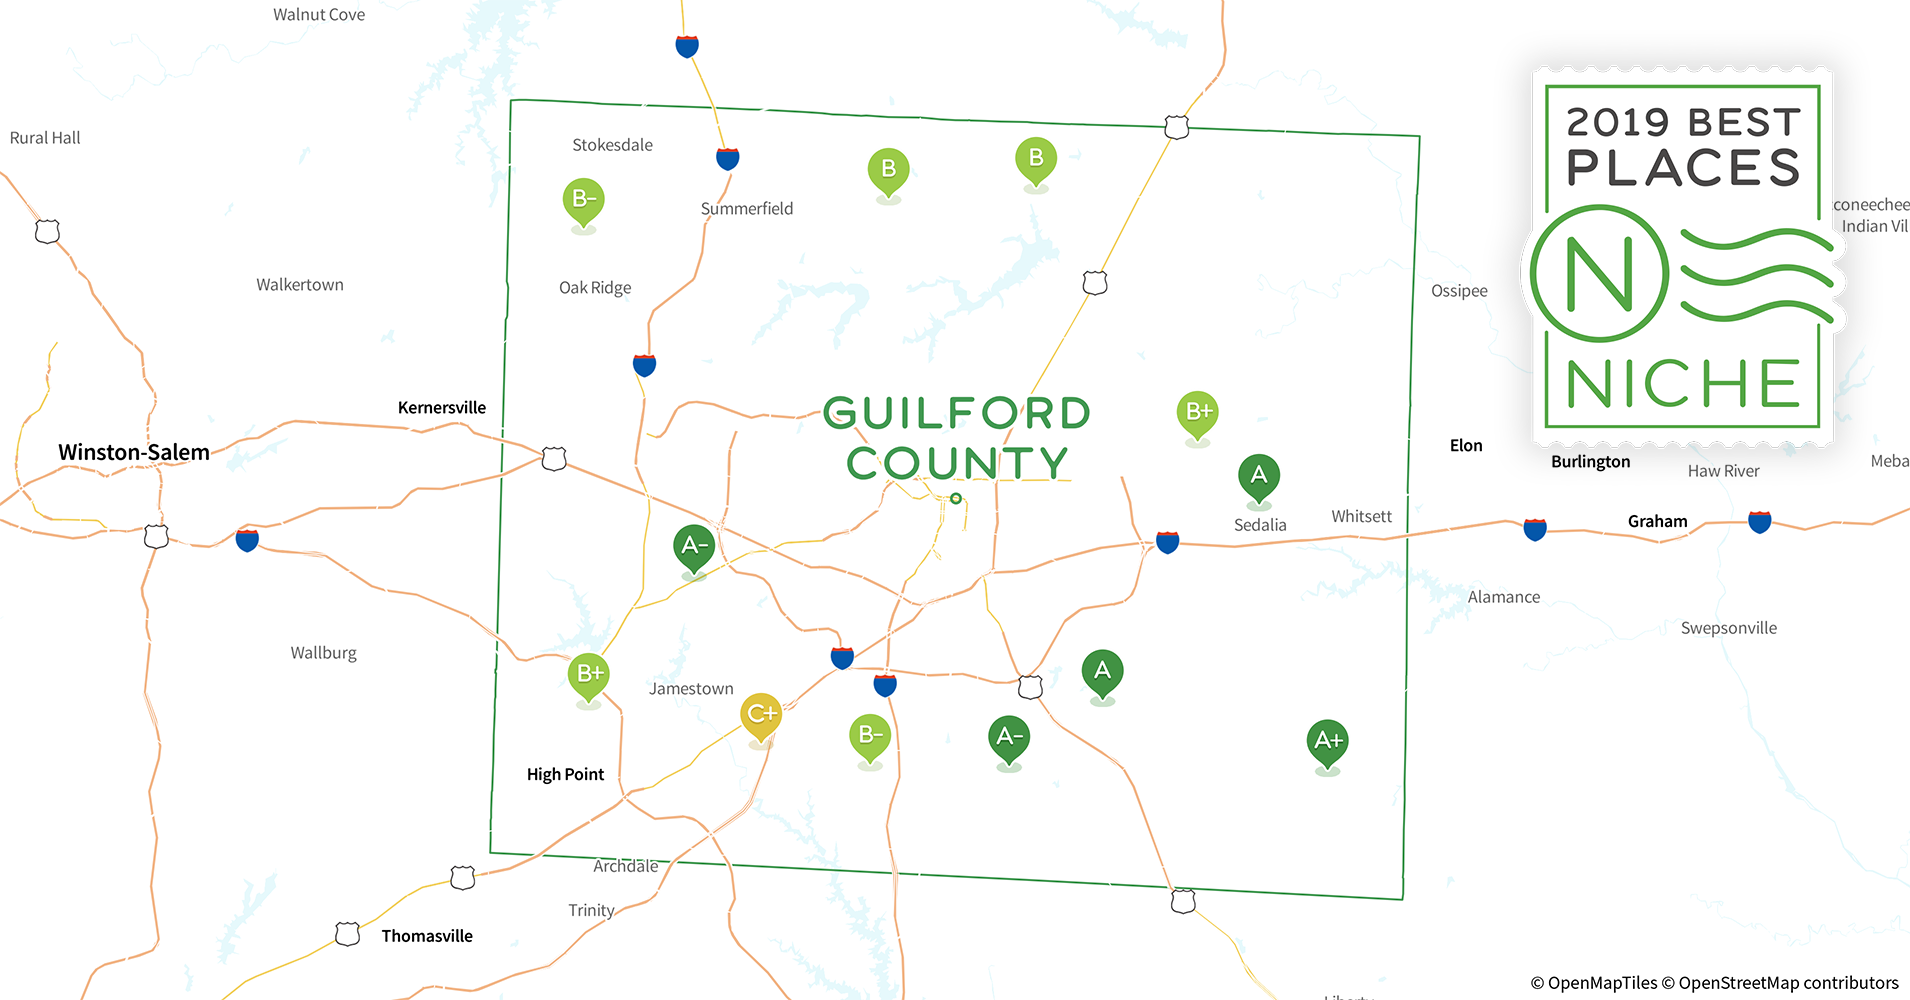 2019 Best Places To Live In Guilford County Nc Niche